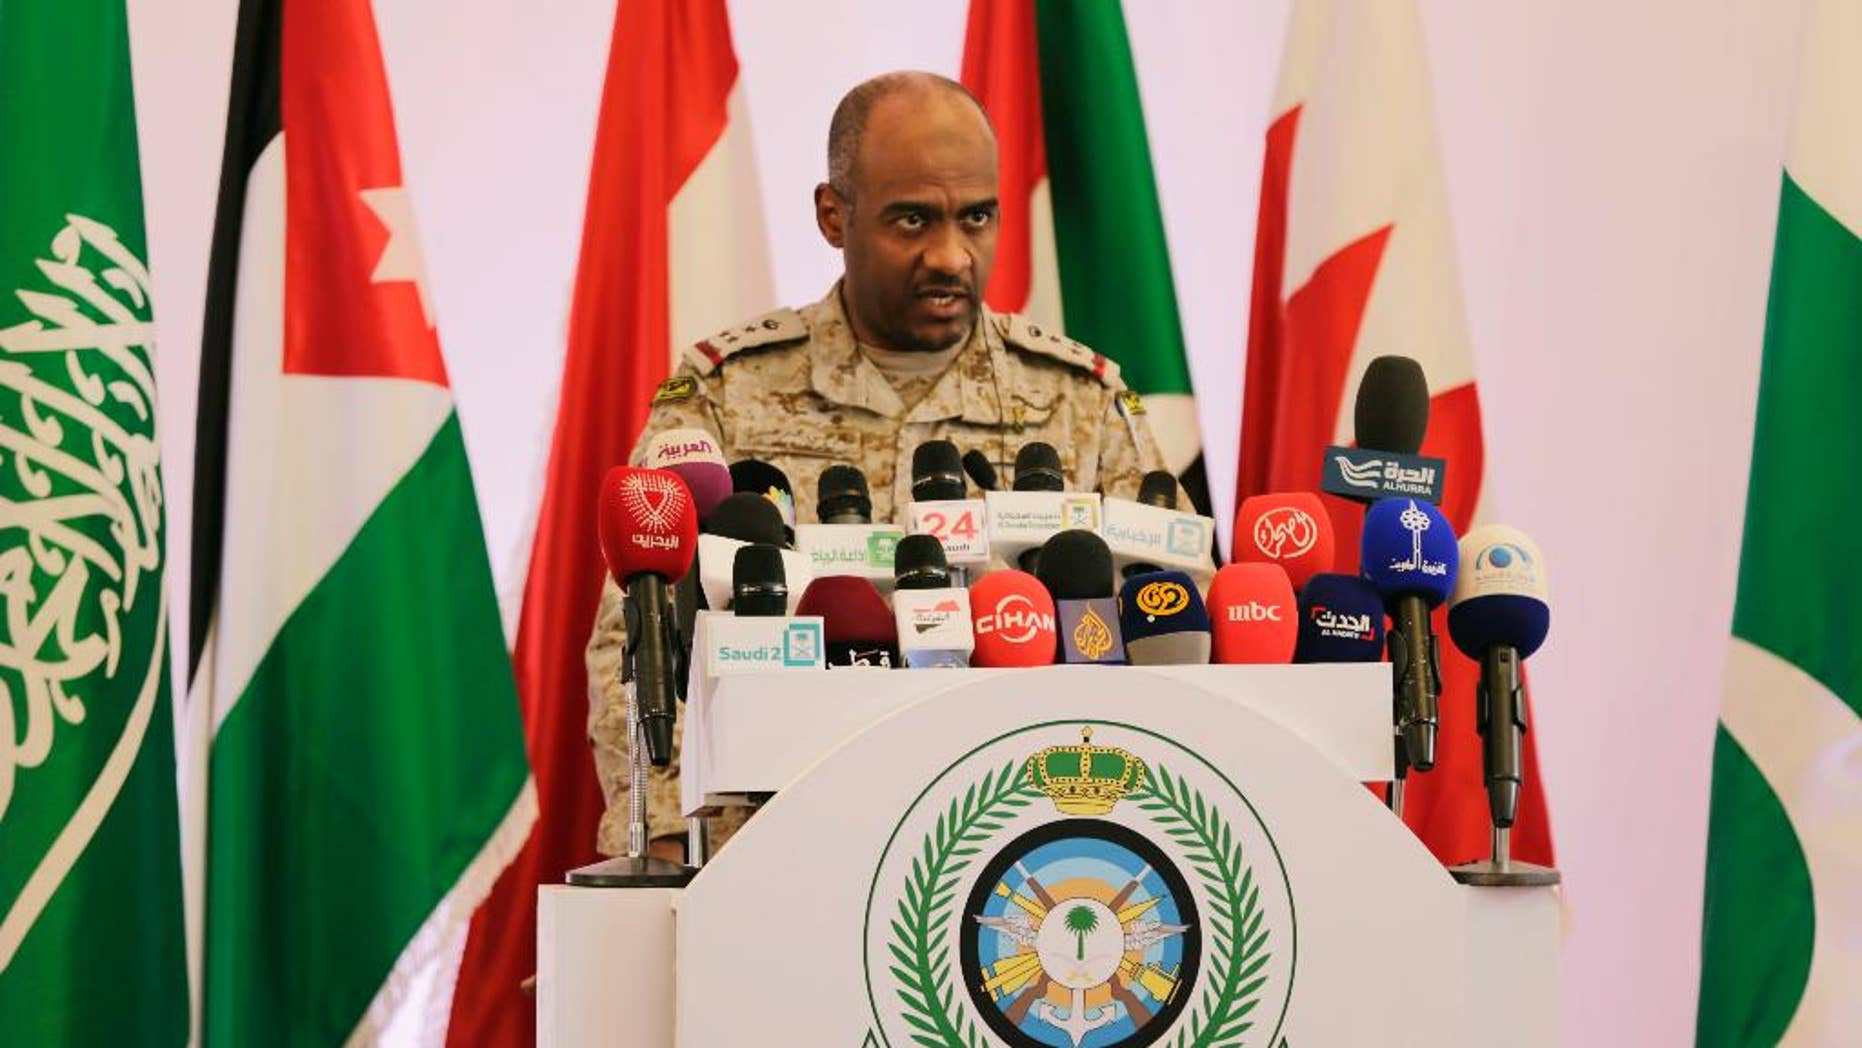 April 14, 2015: Saudi military spokesman Ahmed Asiri briefs journalists on the Saudi-led coalition's strikes on Houthi rebels in Yemen, during a press conference, in Riyadh, Saudi Arabia.